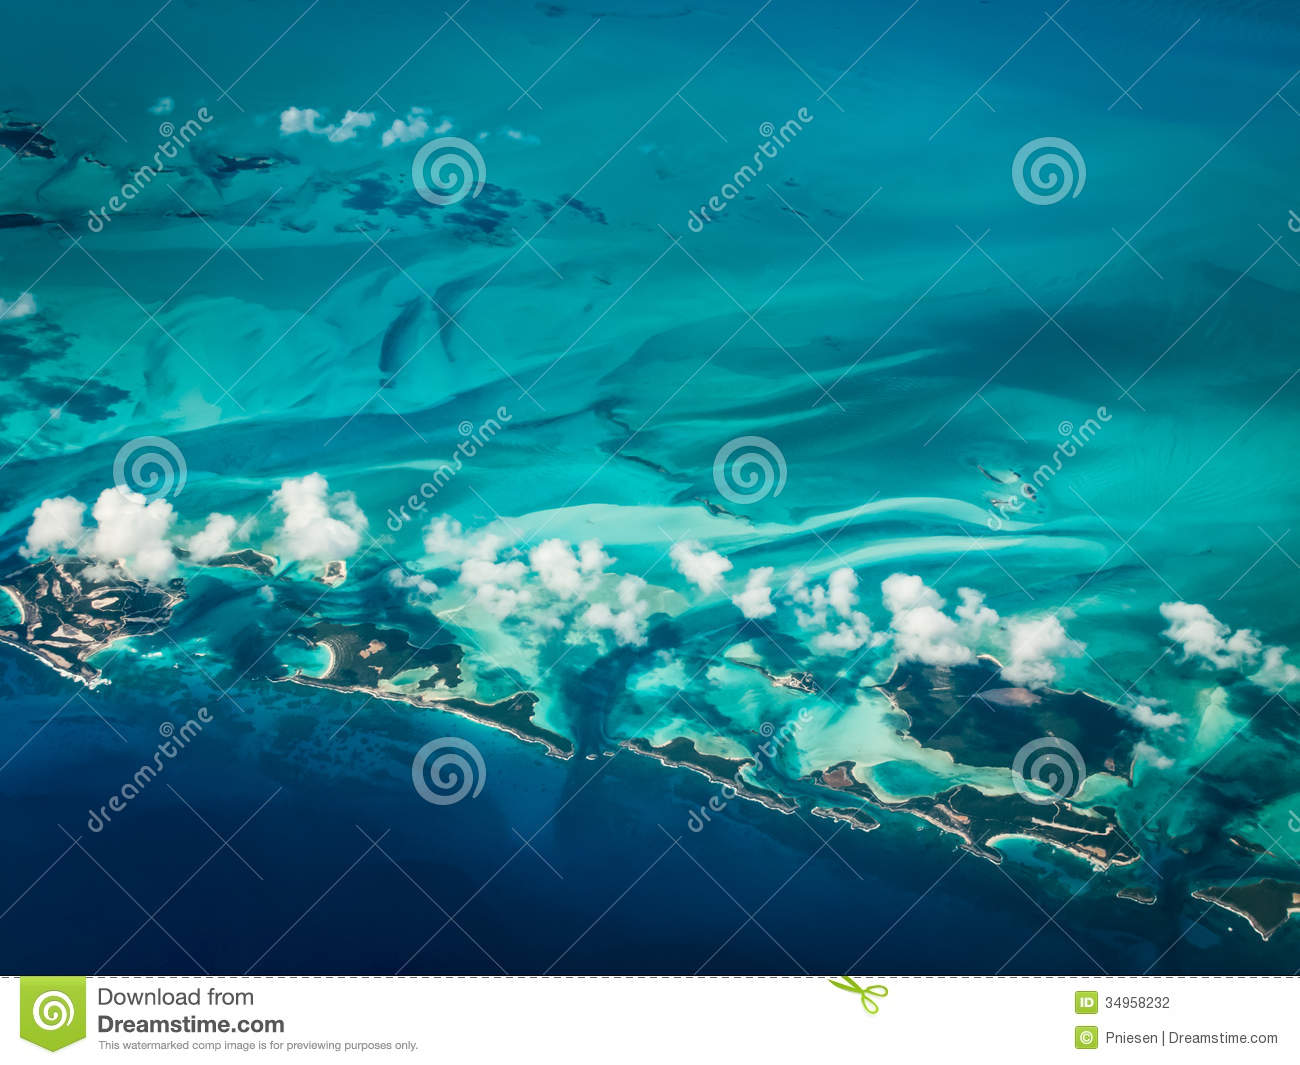 Aerial view of Caribbean islands surrounded by greenish turquoise of water near barrier reefs